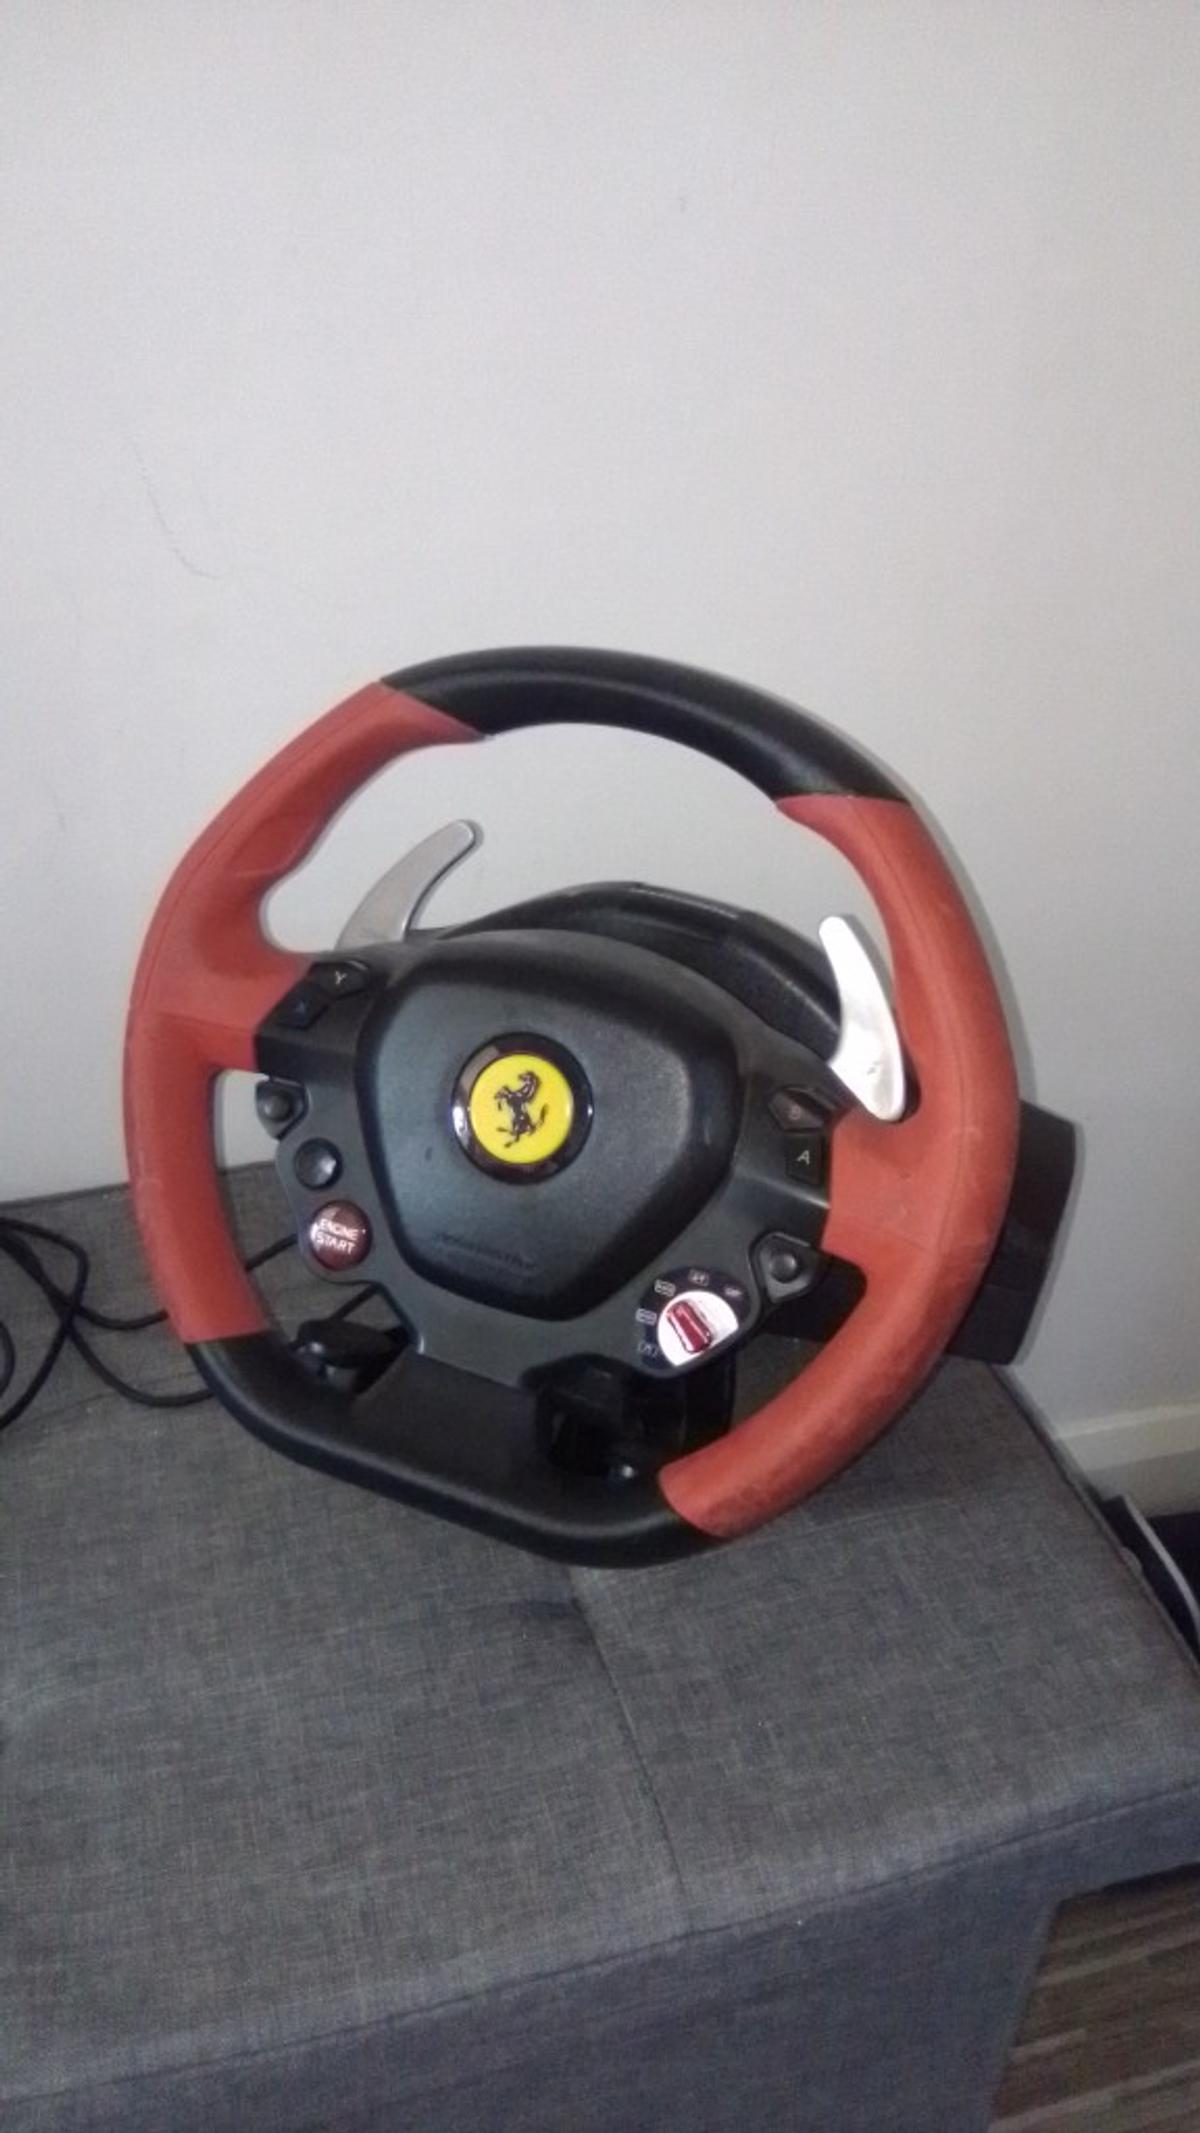 it's a 124 spider fararri Xbox one steering wheel.the make of it is by thrustmaster  collection only please  works with any Forza horizon game